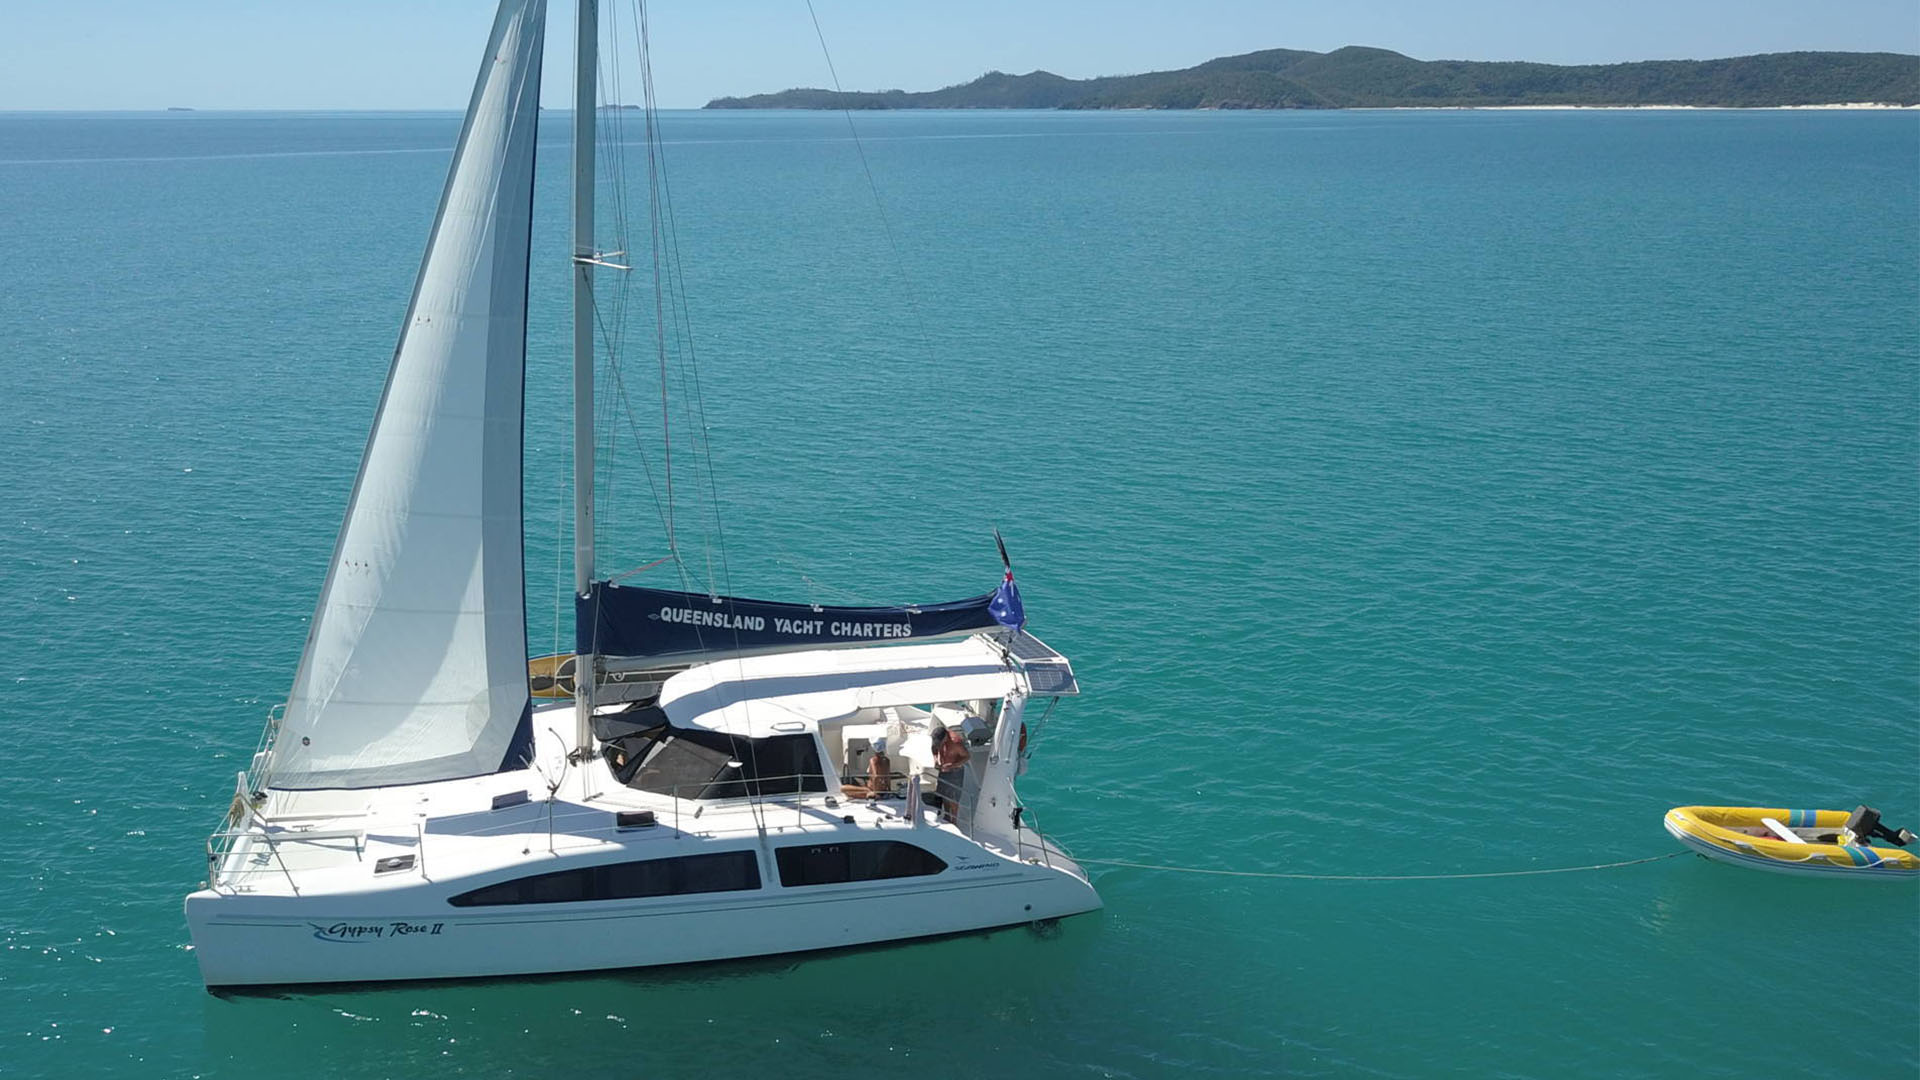 Seawind 1160.3 'Gypsy Rose'